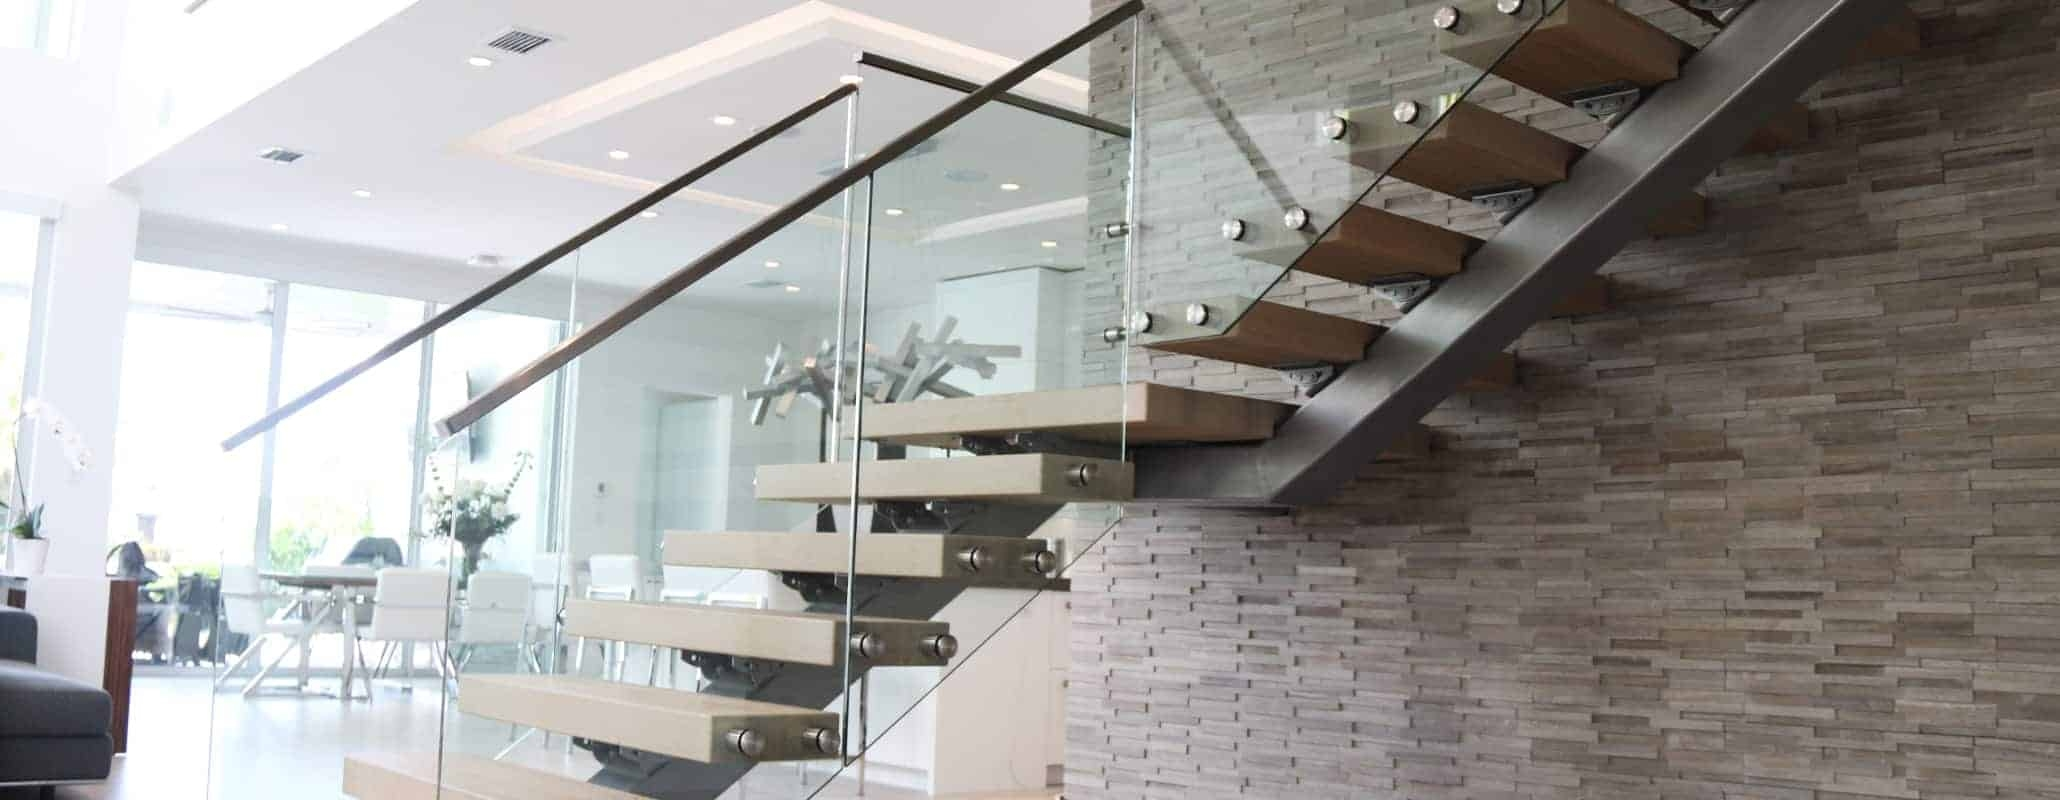 Glass Railings For Interior And Exterior Use By Aldora   Glass Handrails For Balcony   Glass Guardrail   Exterior   Stainless Steel   Staircase   Veranda